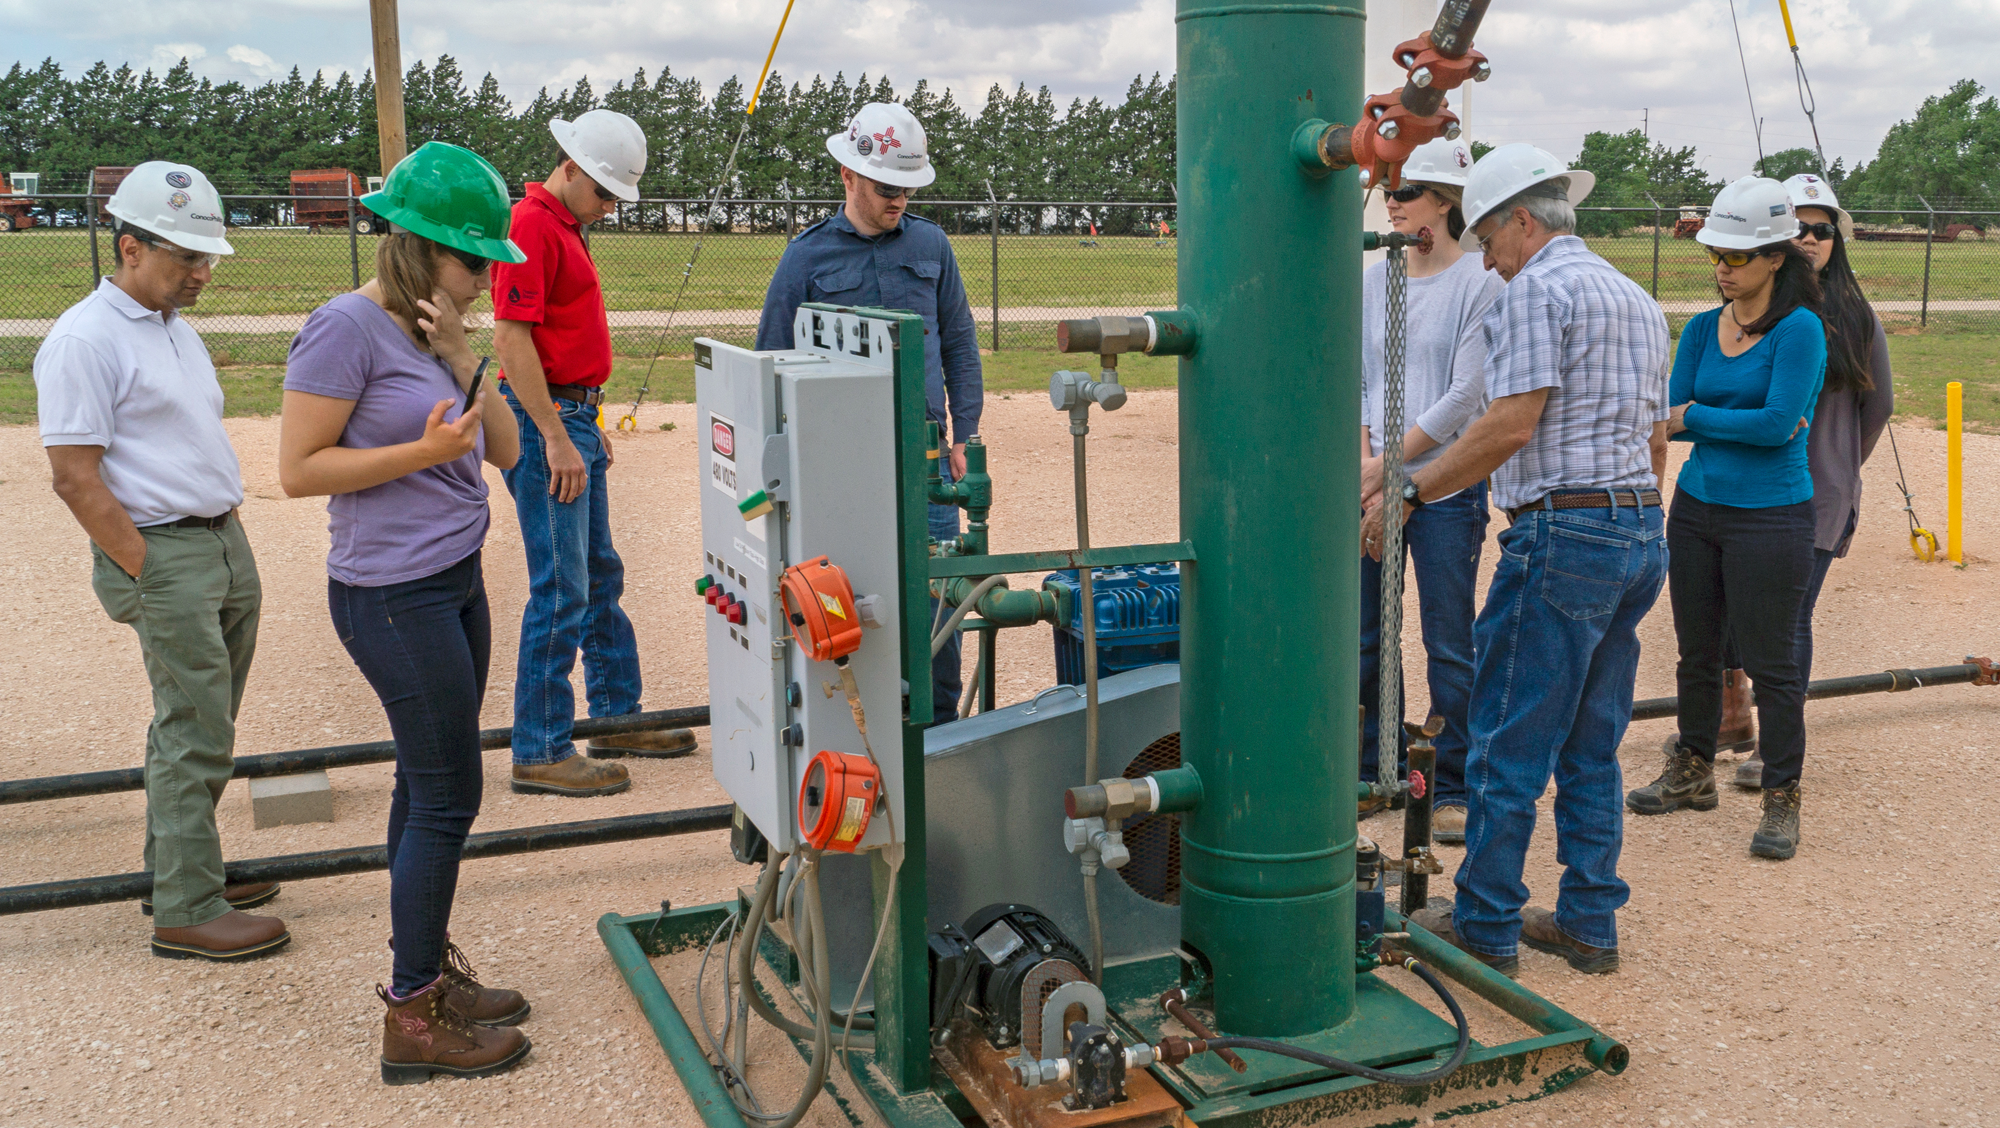 Group of people gathered around outdoor well site equipment